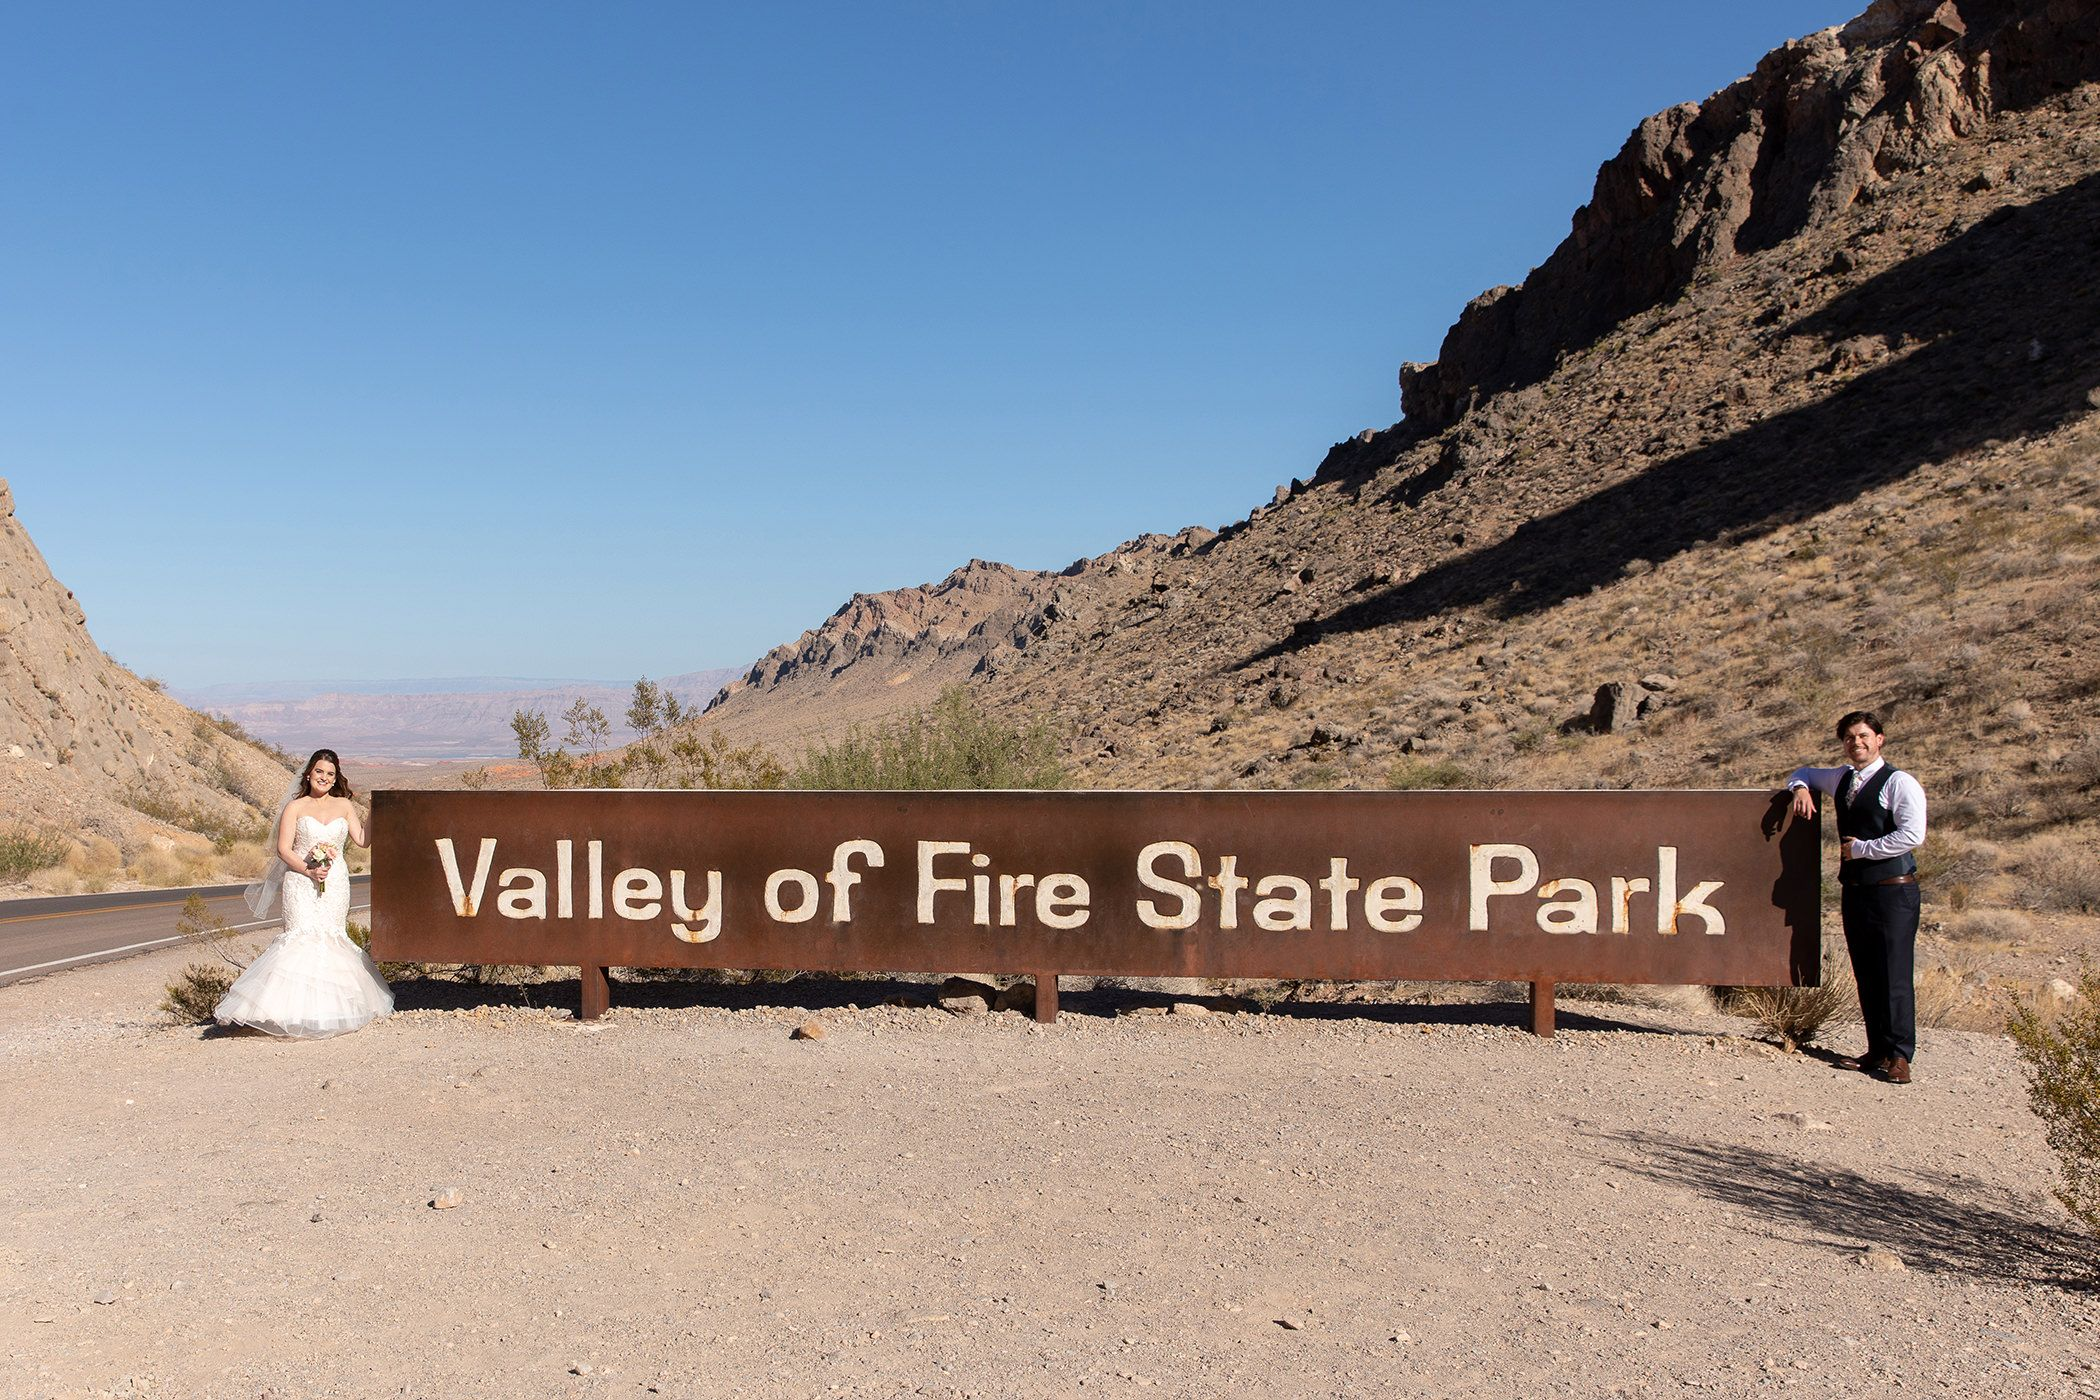 Valley of fire state park wedding photo sign